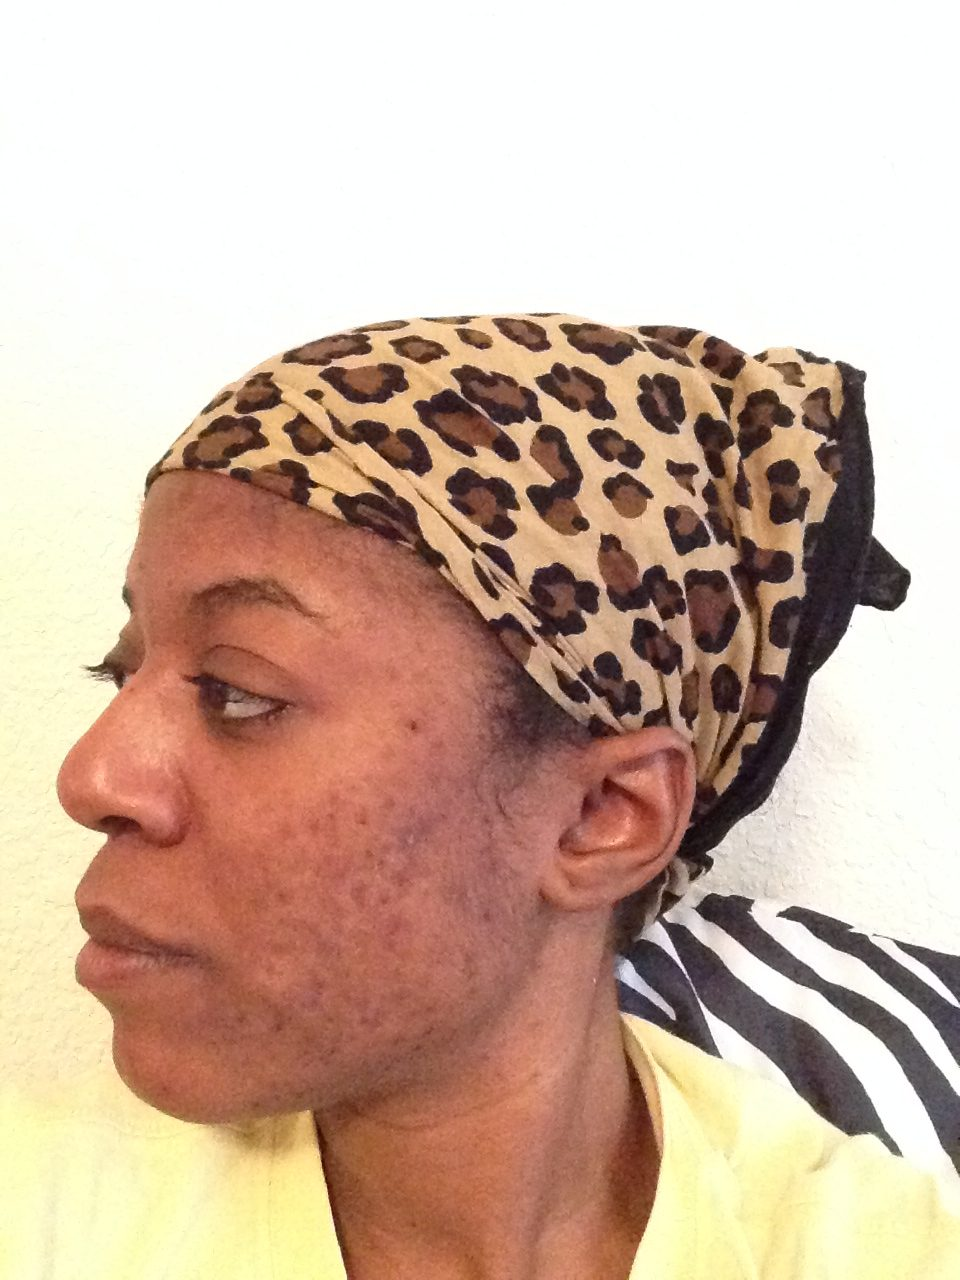 cure cystic acne using african black soap.jpg